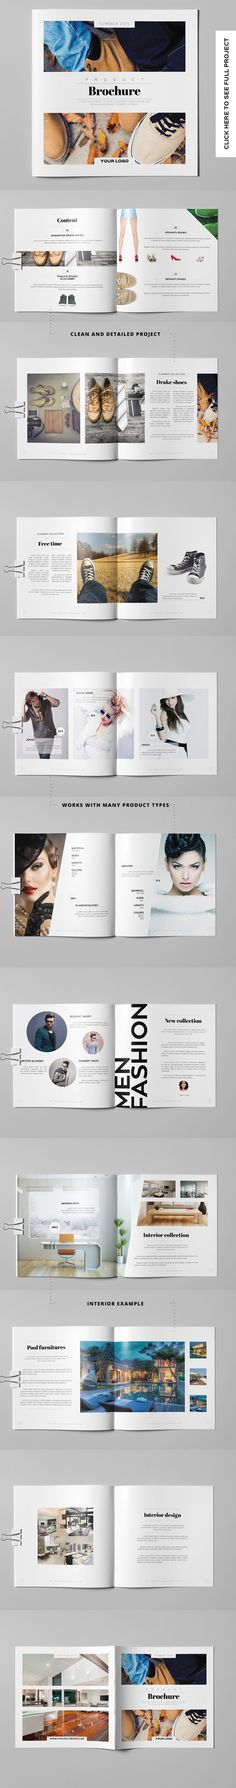 New Design Brochure Square Editorial Layout Ideas Design Brochure, Booklet Design, Brochure Layout, Branding Design, Logo Design, Brochure Cover, Brochure Template, Luxury Brochure, Free Brochure